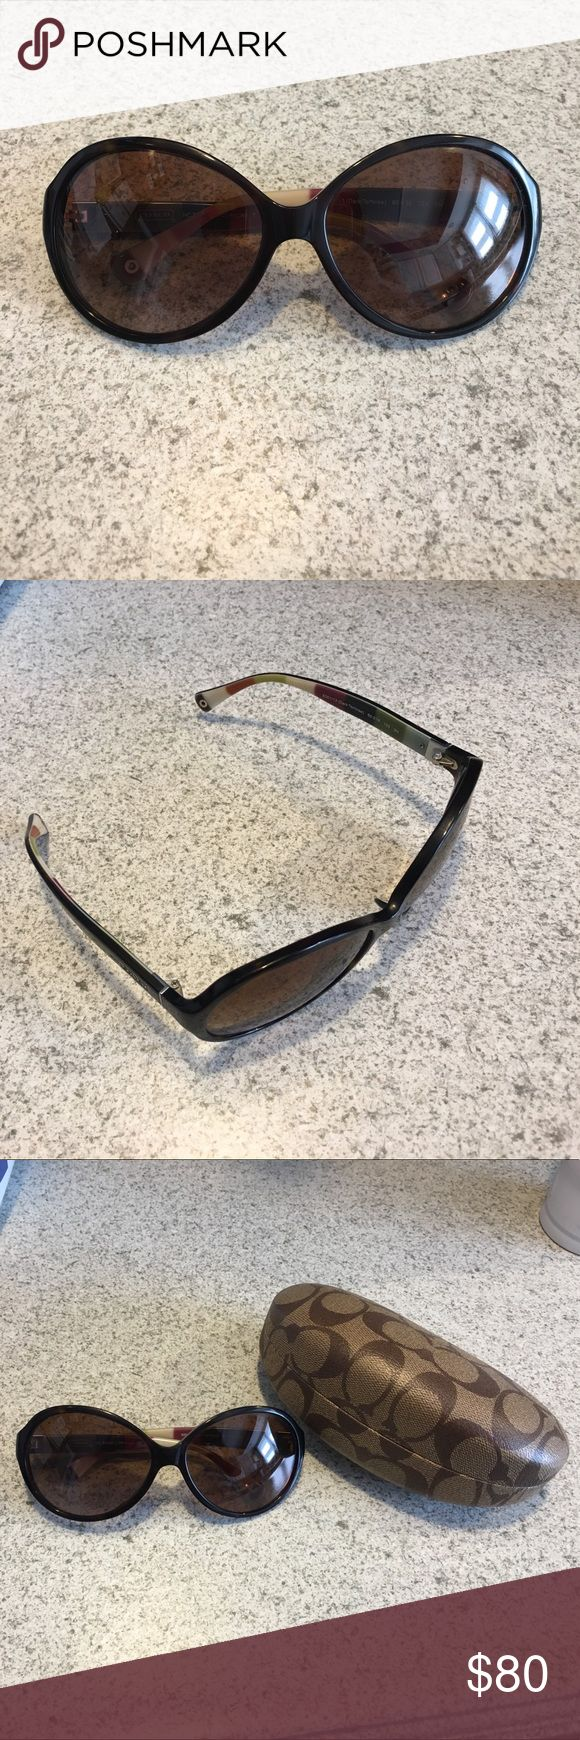 Authentic Coach Sunglasses Authentic Coach Sunglasses comes with case and Coach shopping bag. Lenses both have some scratches on them, but still can see thru them good. Inside of ear pieces are multi colored. Make an offer! Coach Accessories Sunglasses